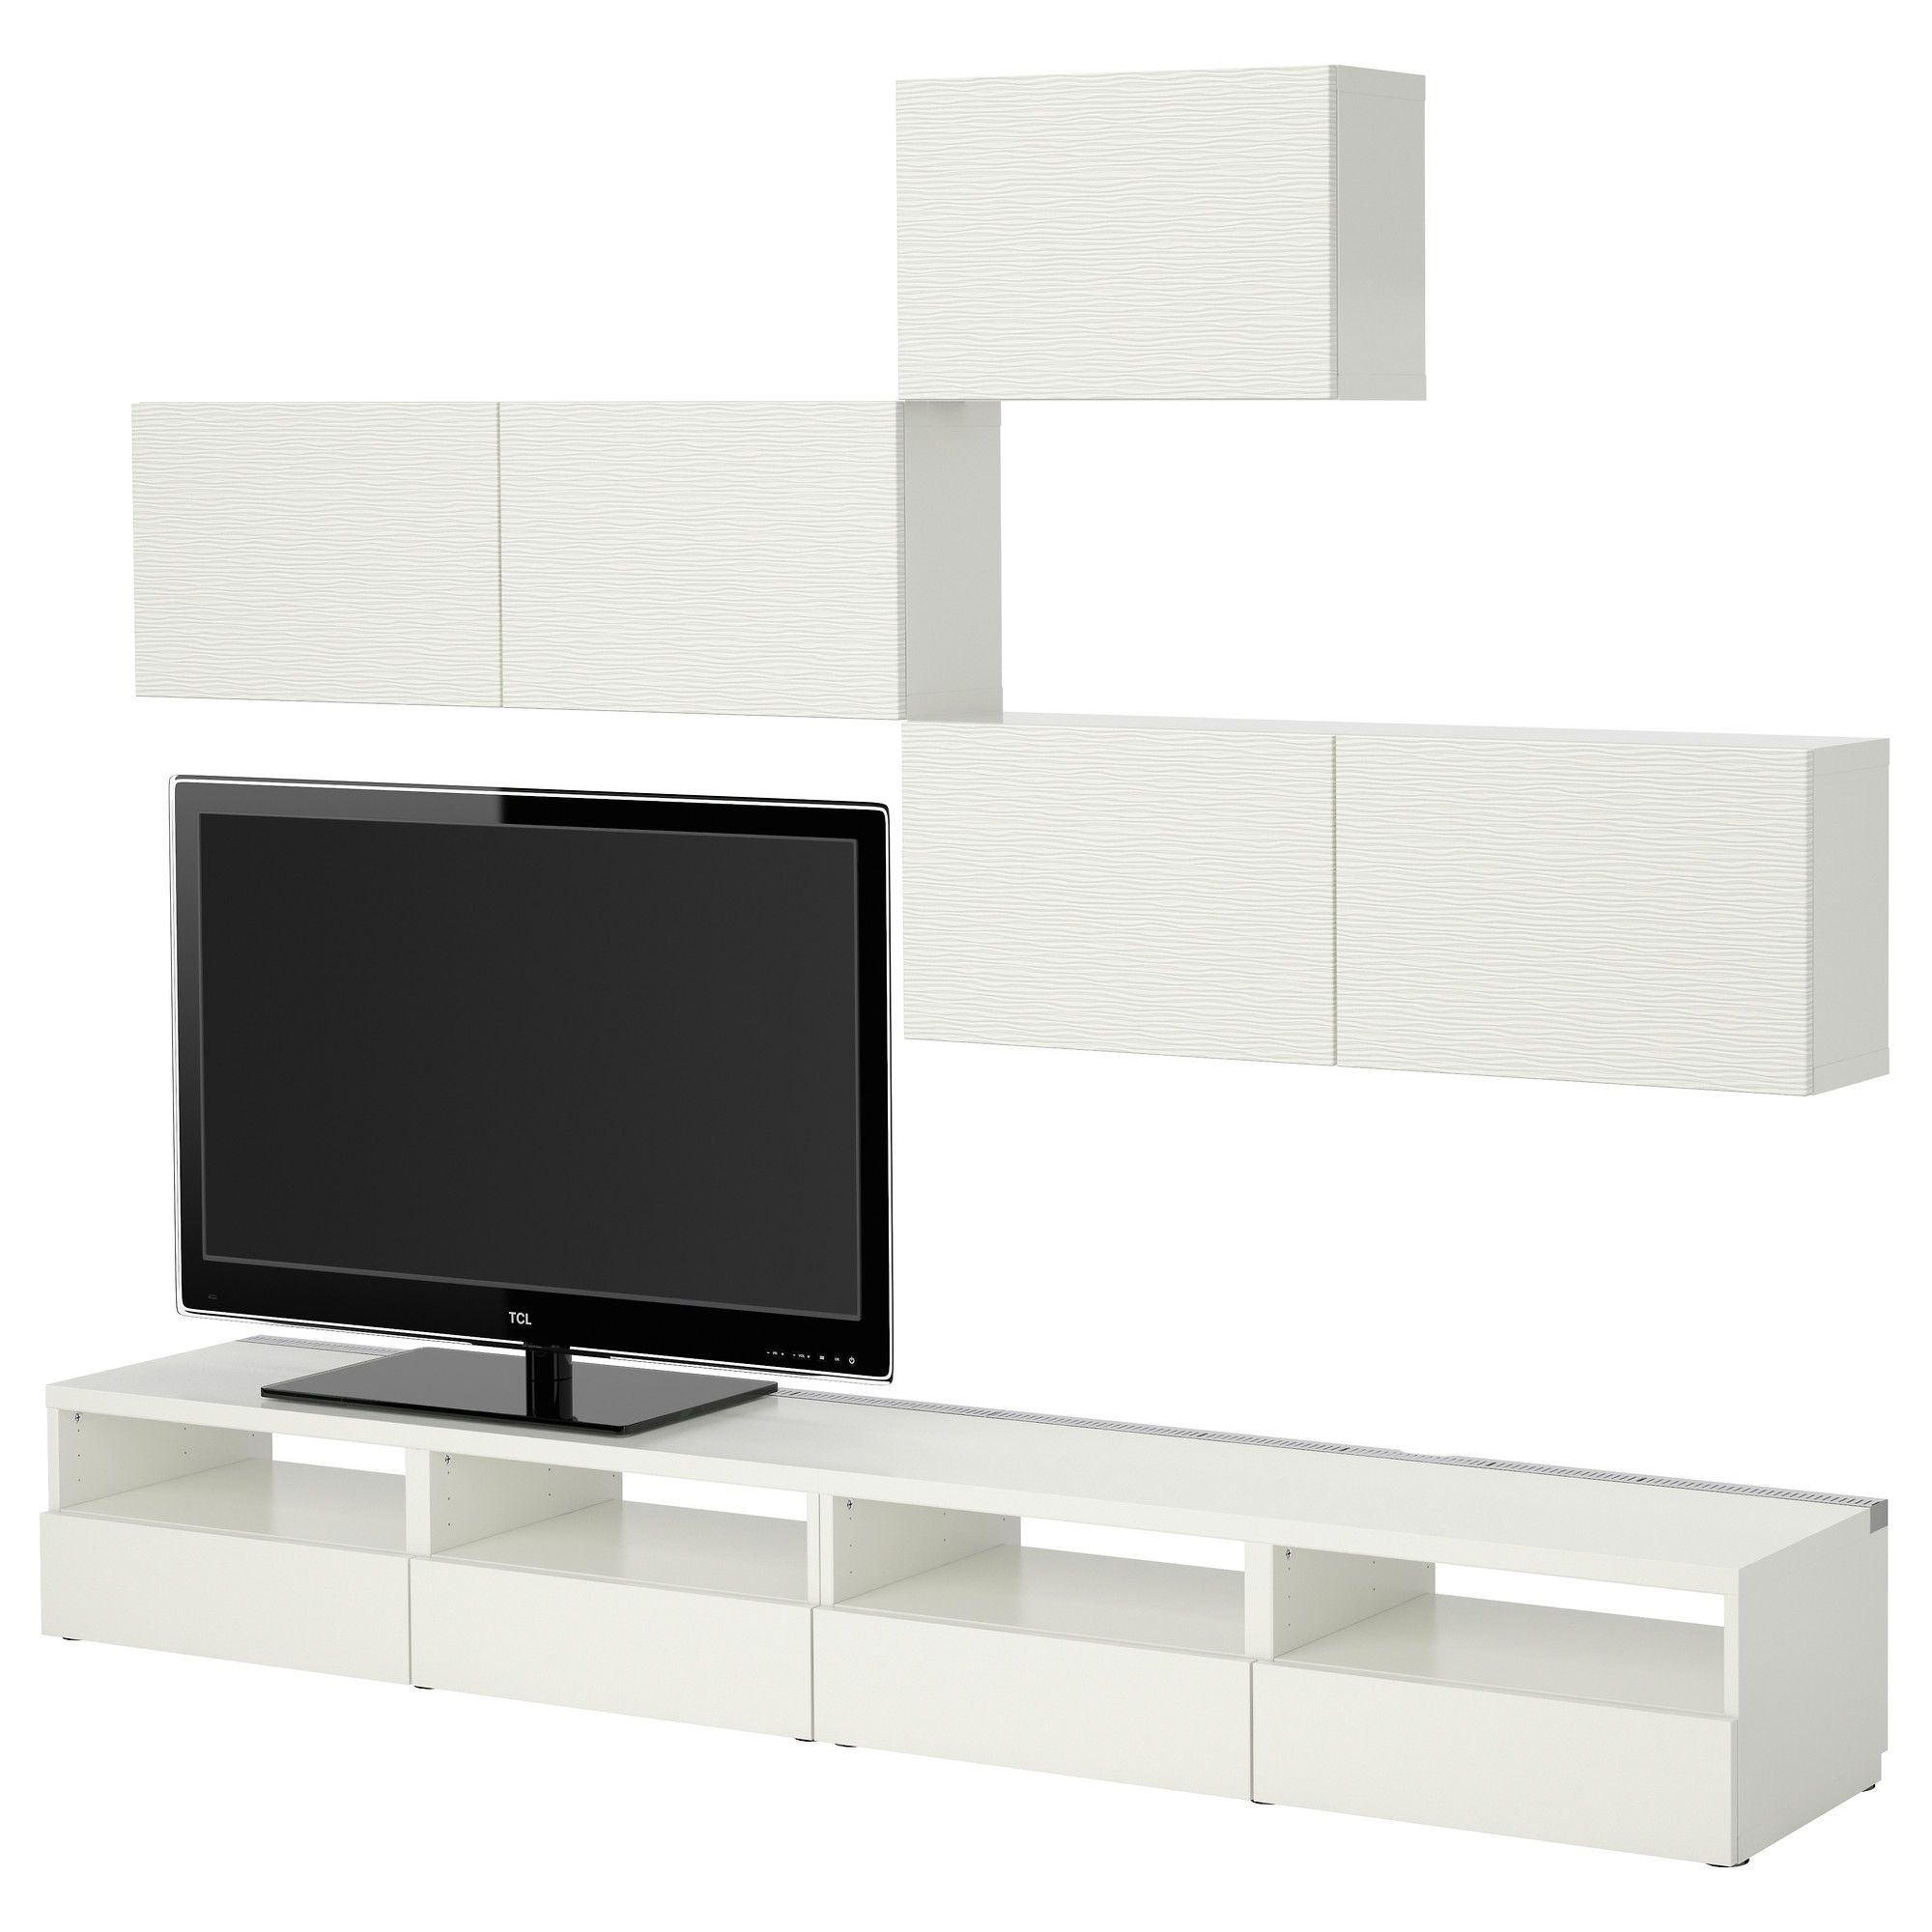 Best Tv Storage Combination Laxviken White Ikea Home Ideas  # Petit Meuble Tv But